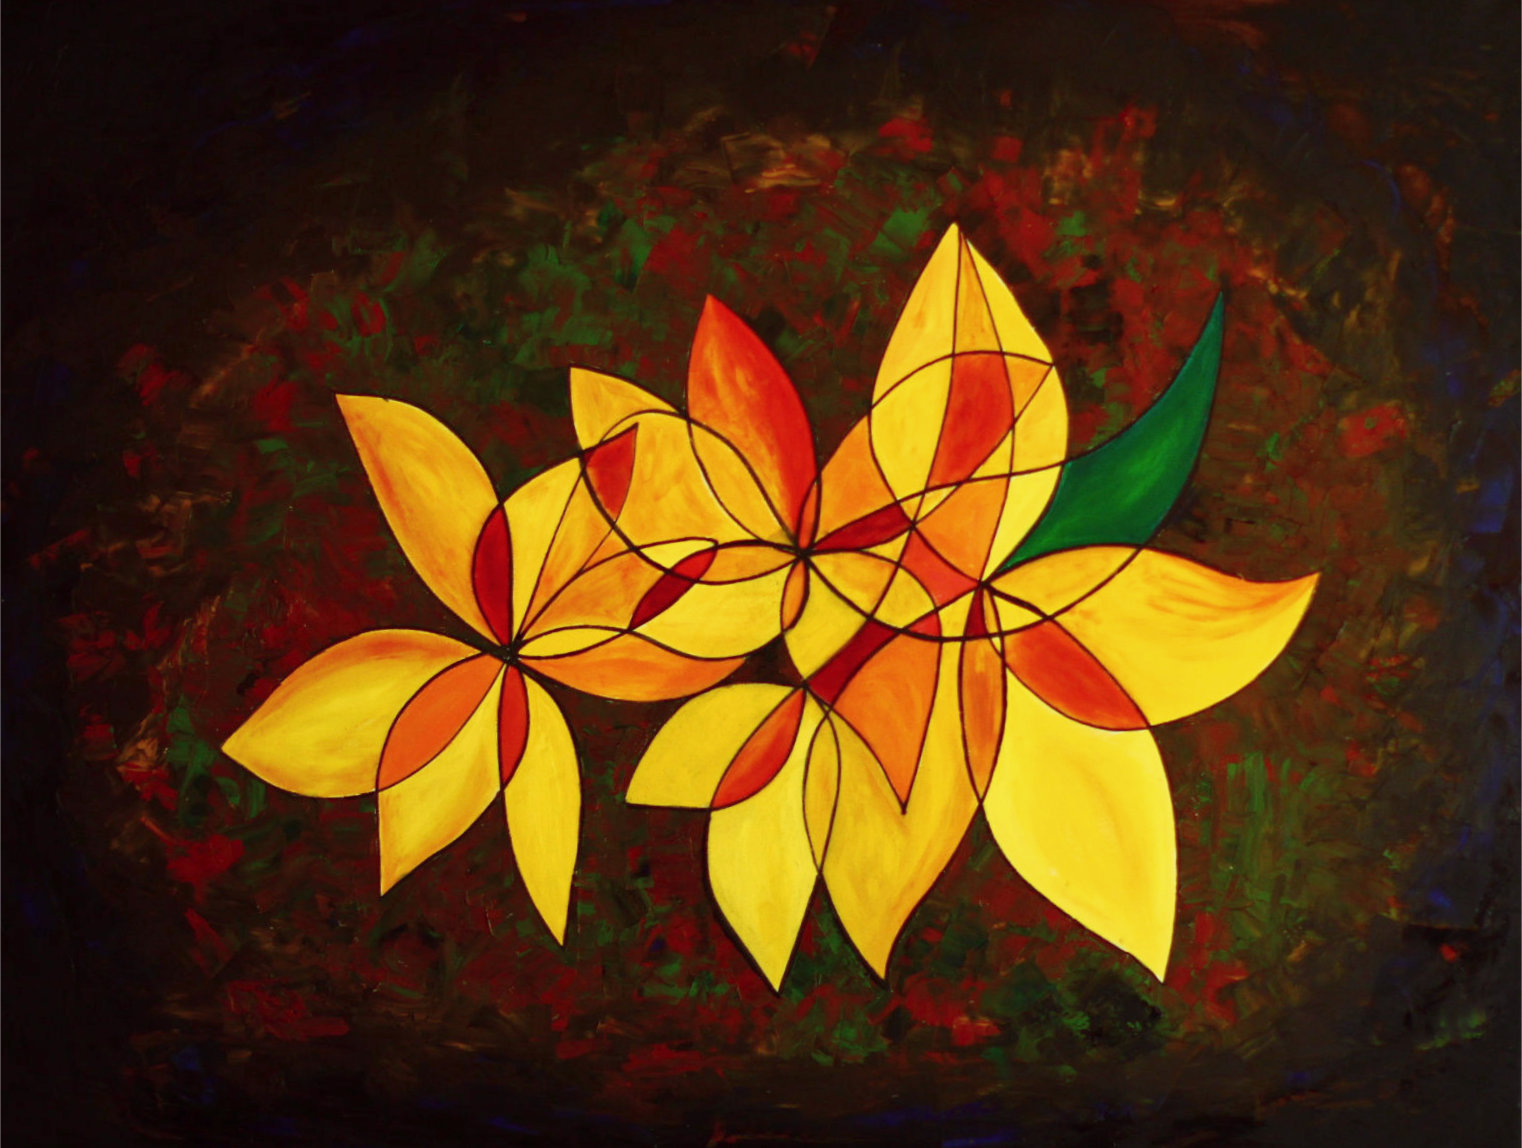 Energy painting abstract sunflowers on a dark background